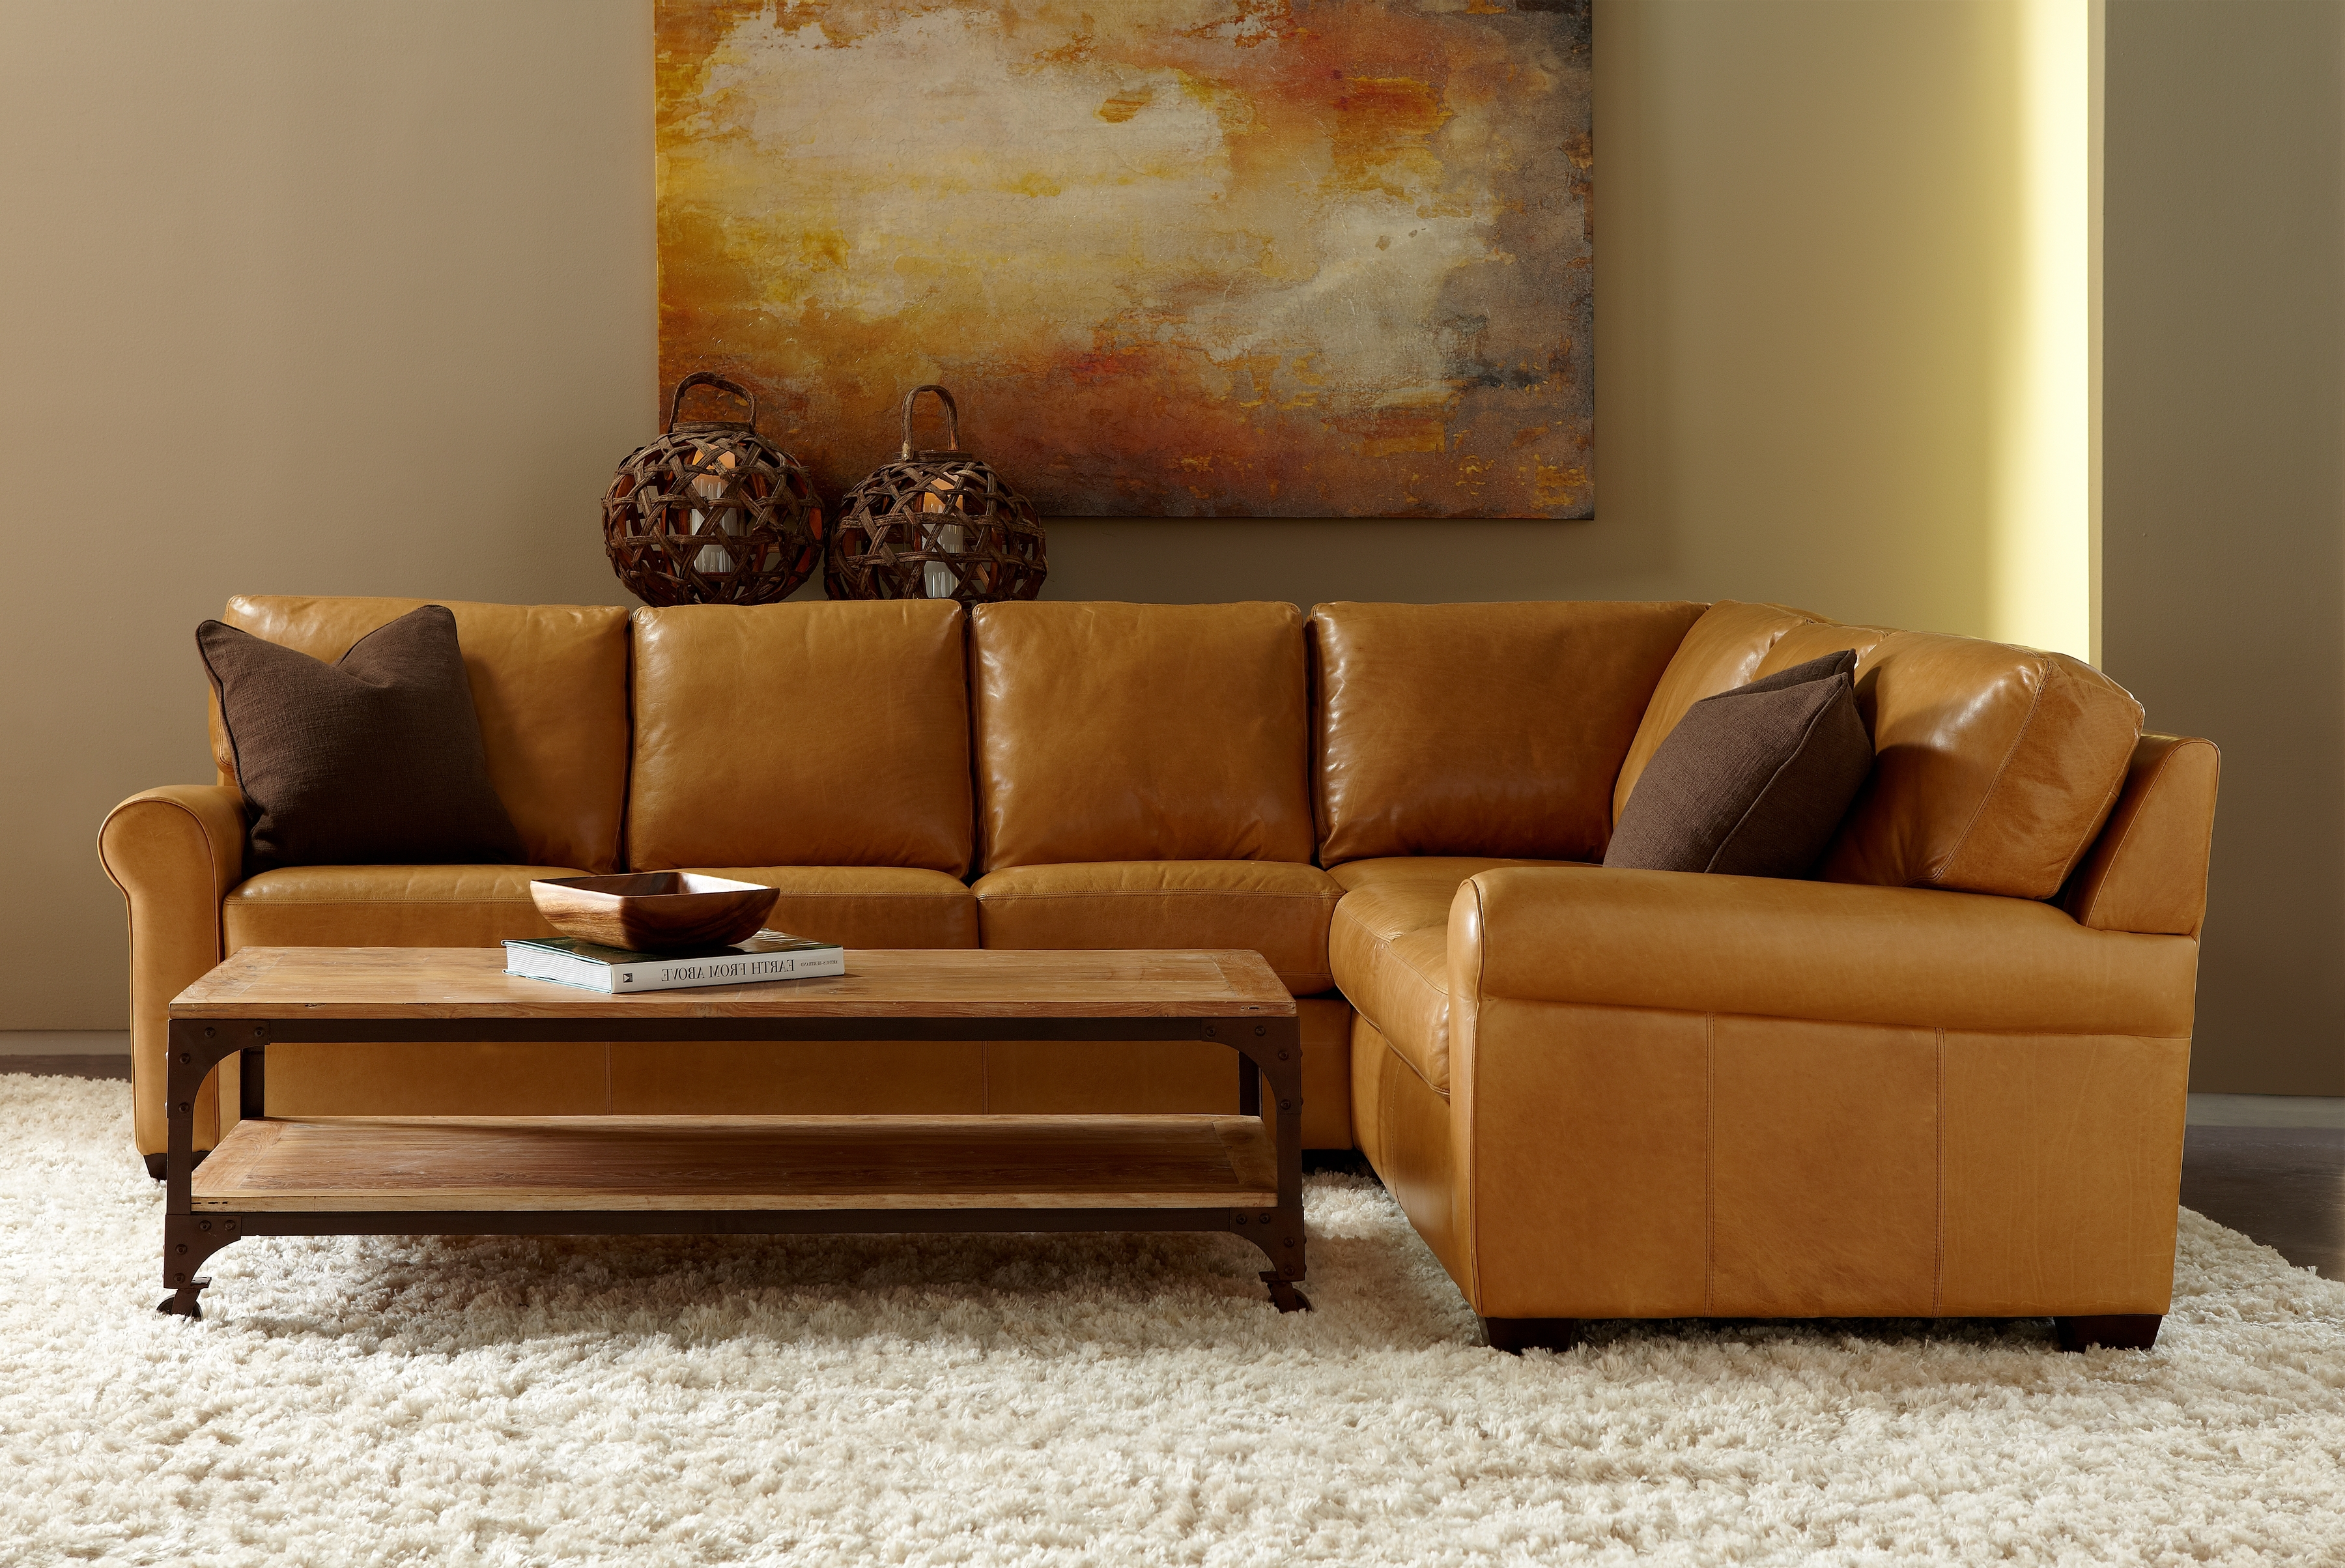 Made In Usa Sectional Sofas Throughout 2019 Sectional Sofas – Elegance And Style Tailored Just For Youand (View 10 of 20)